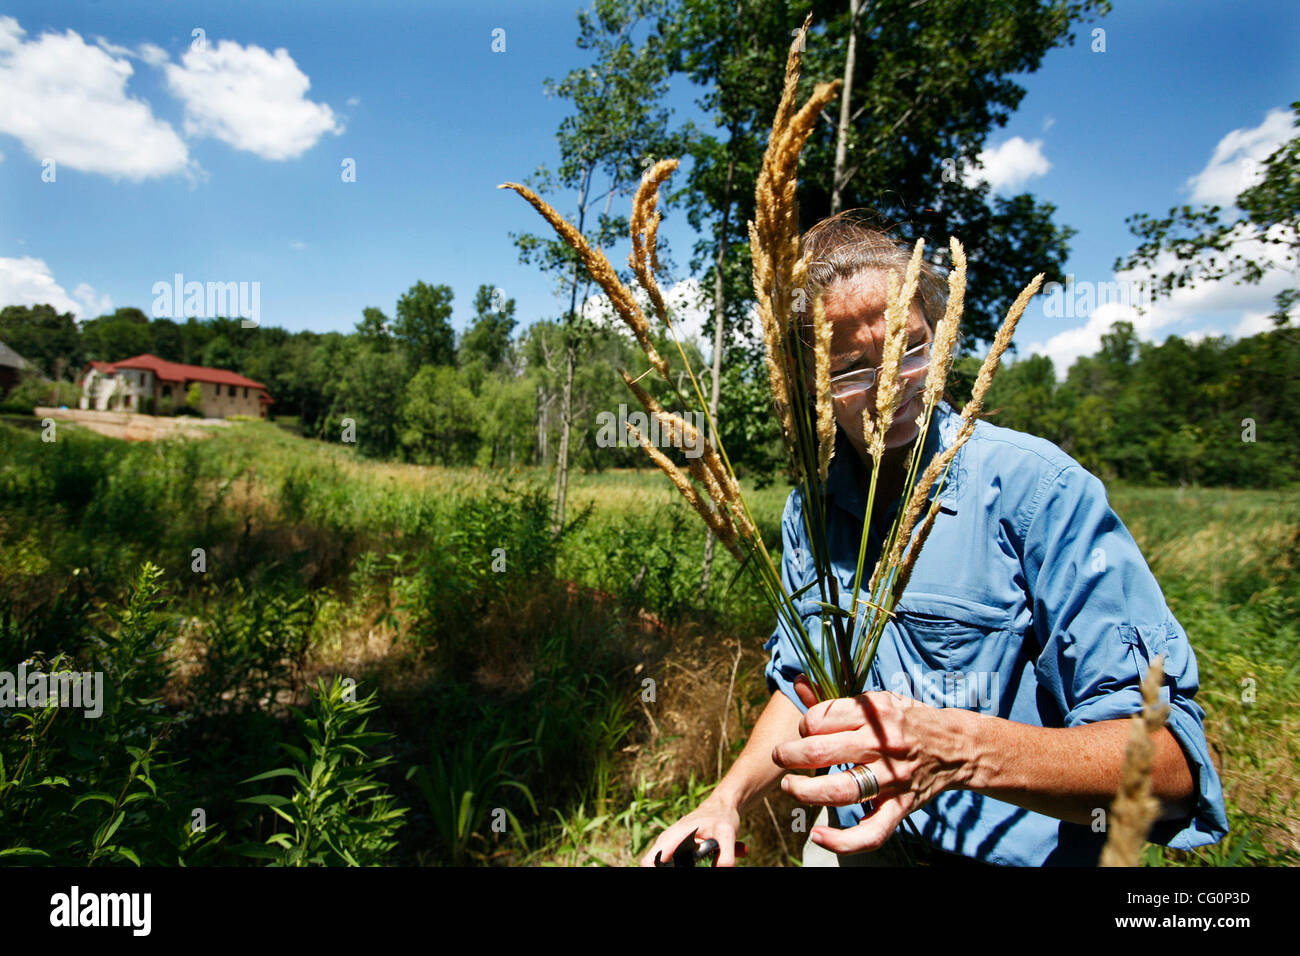 Minnetonka, MN;7/5/07;left to right: Ecologist Lee Marlowe removes a bundle of Reed canary grass. The nonnative - Stock Image